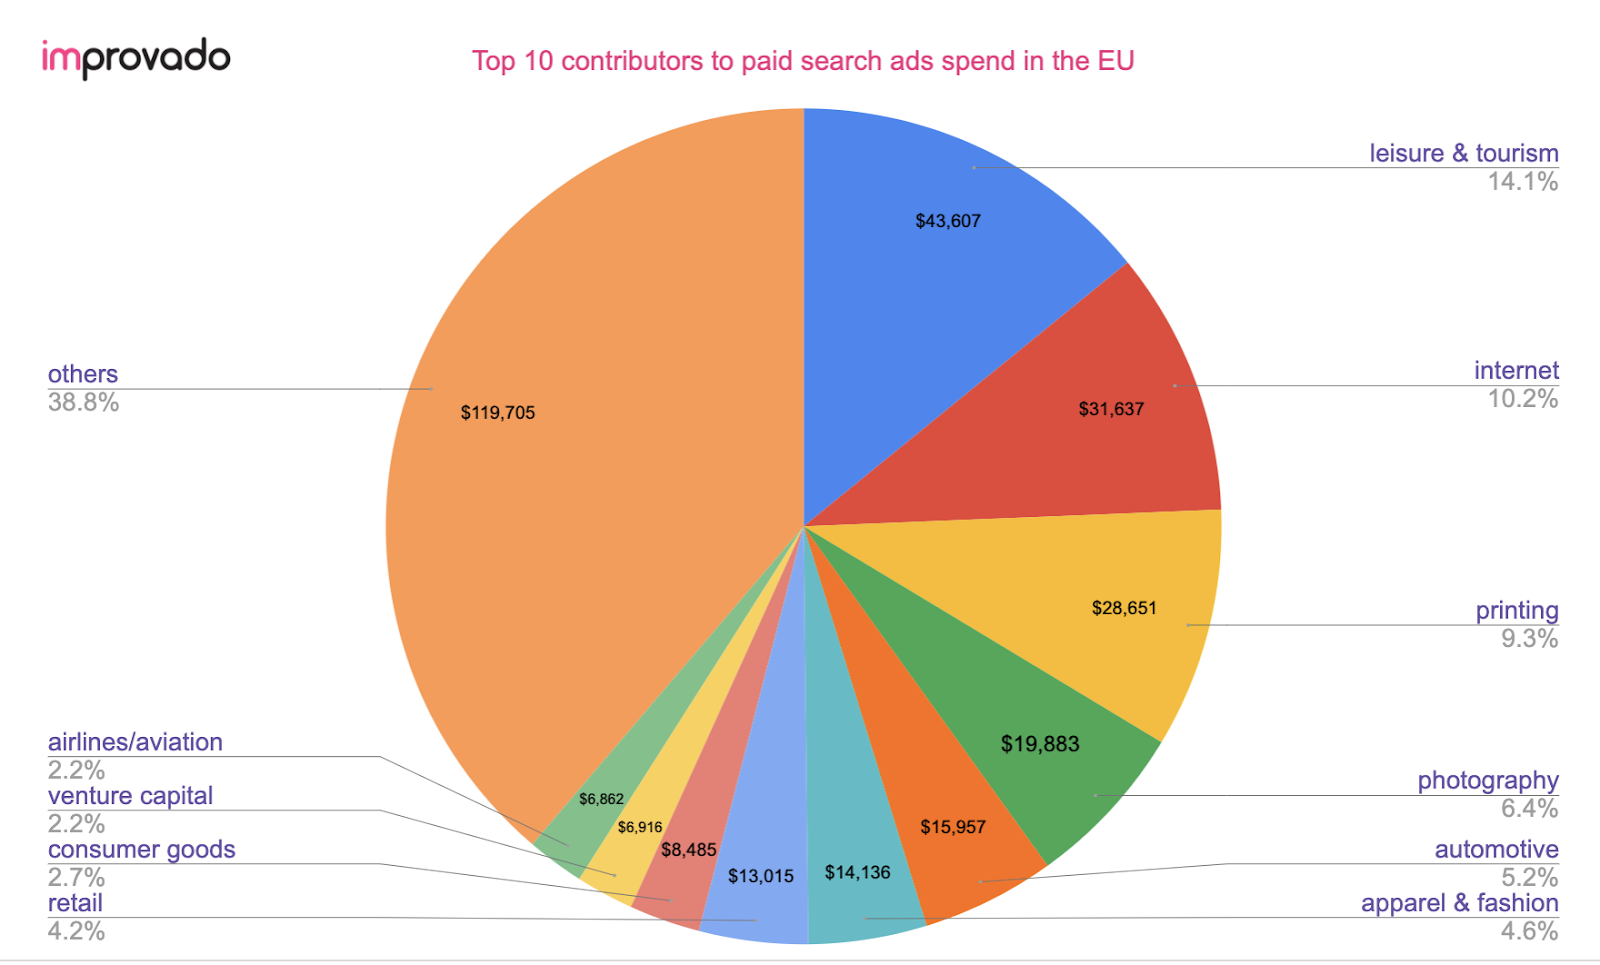 Top 10 contributors to paid search ads spend in the EU